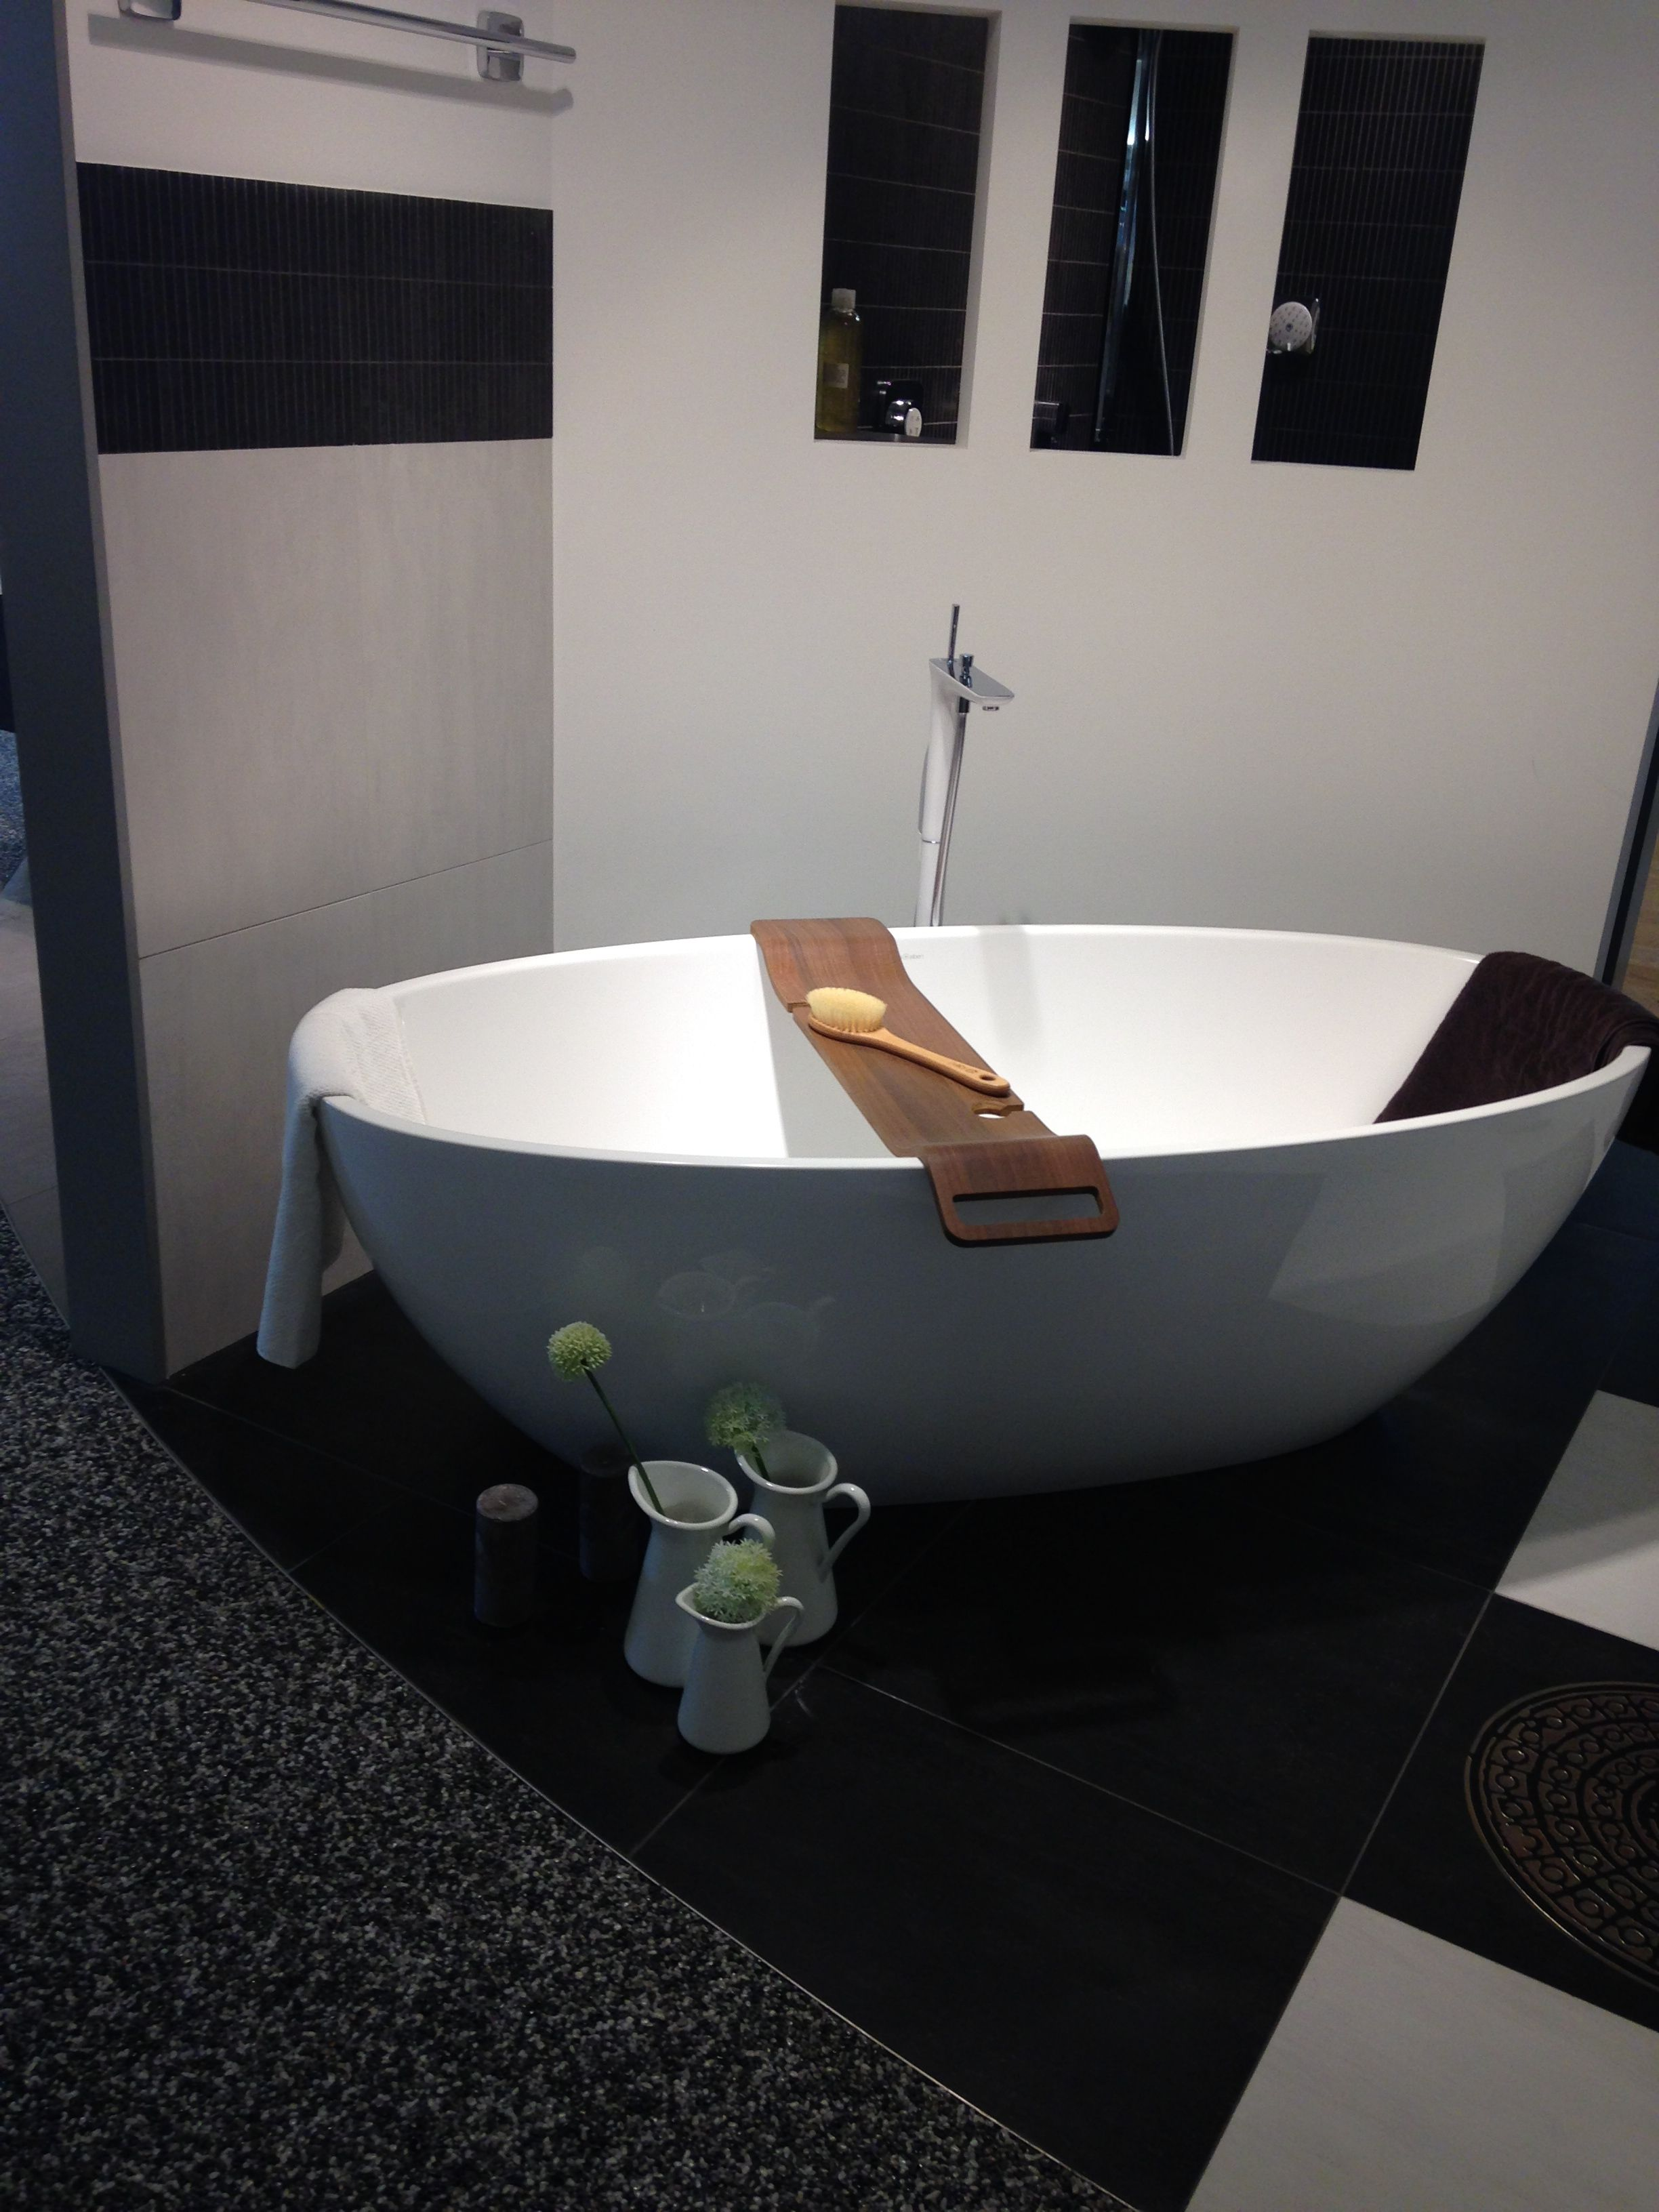 Oh How Much I Would Have Looooved Have This Bath Tub It Turns